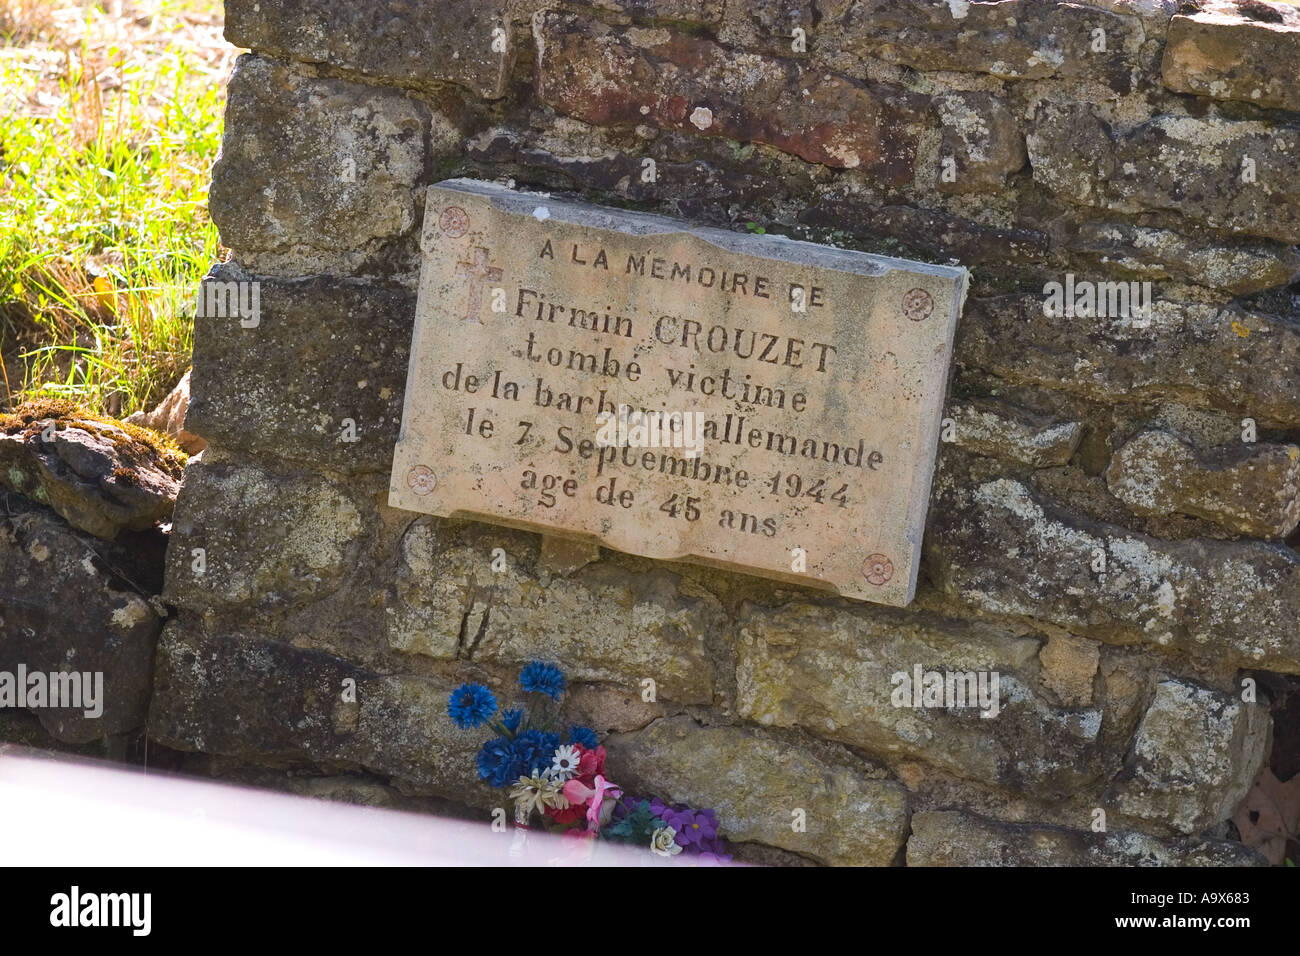 Memorial to French civilians killed 7th September 1944 - Stock Image